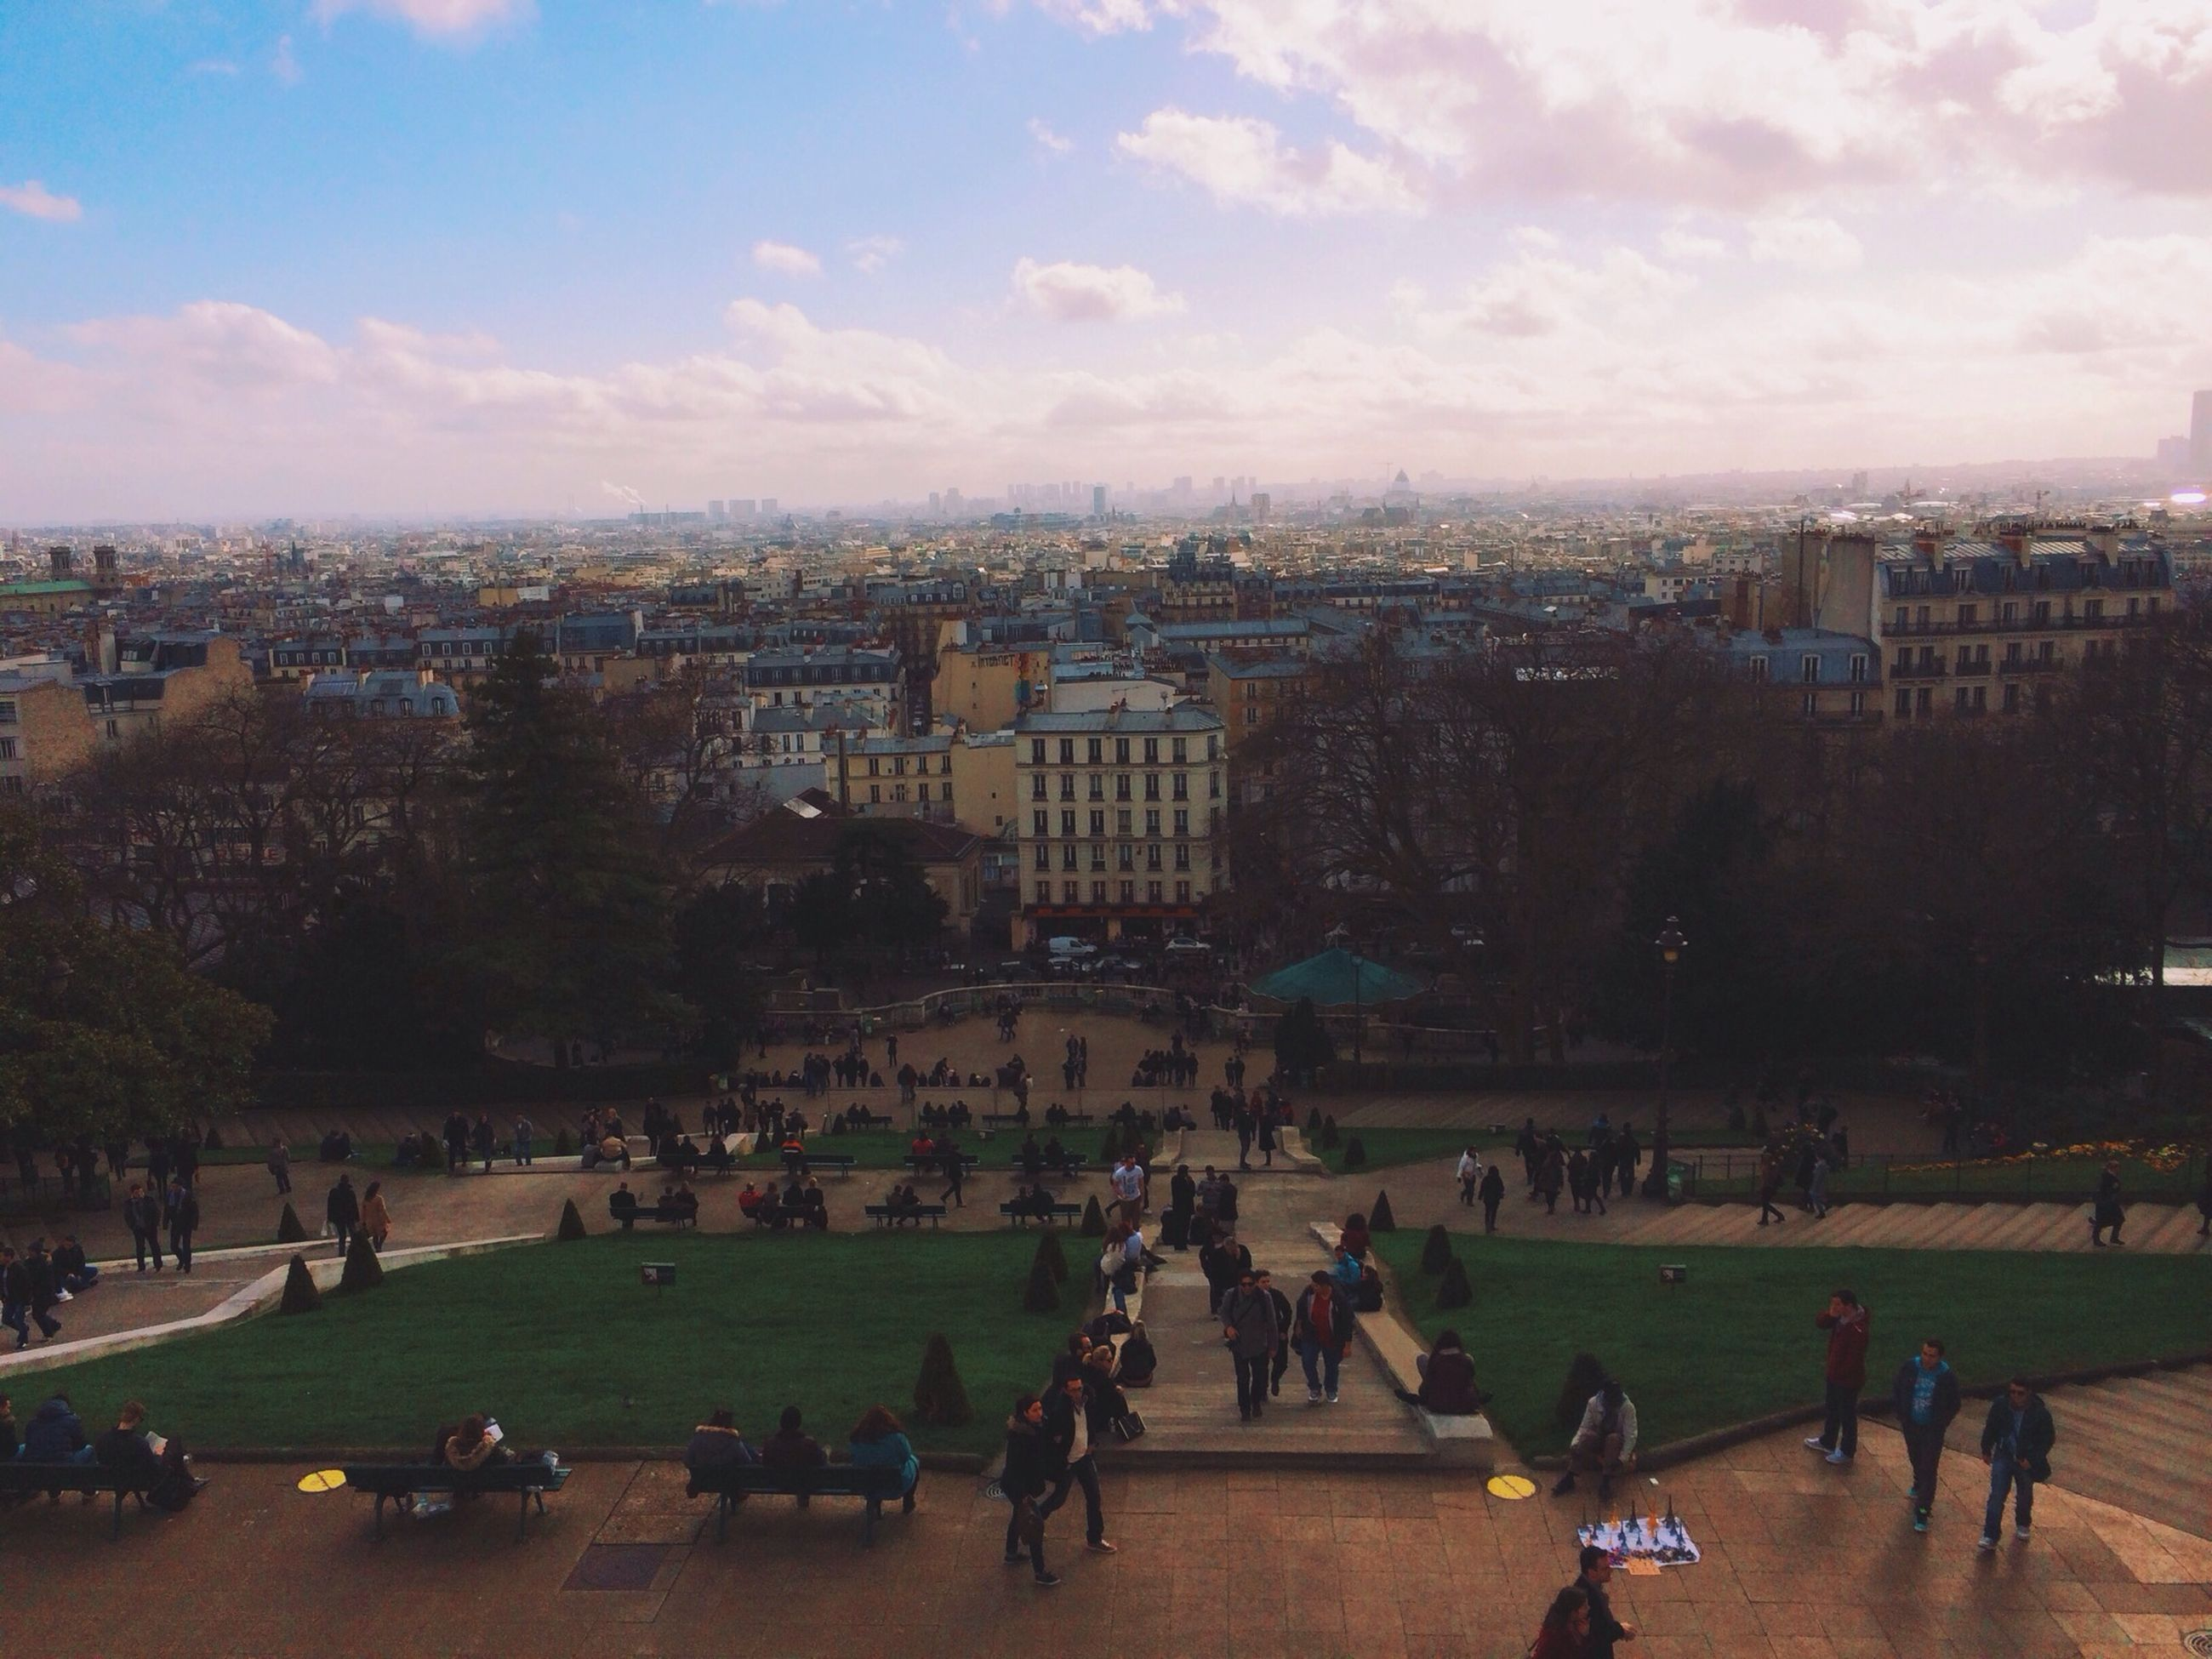 large group of people, architecture, building exterior, built structure, grass, sky, men, lifestyles, city, person, leisure activity, tree, high angle view, cloud - sky, park - man made space, city life, lawn, tourist, mixed age range